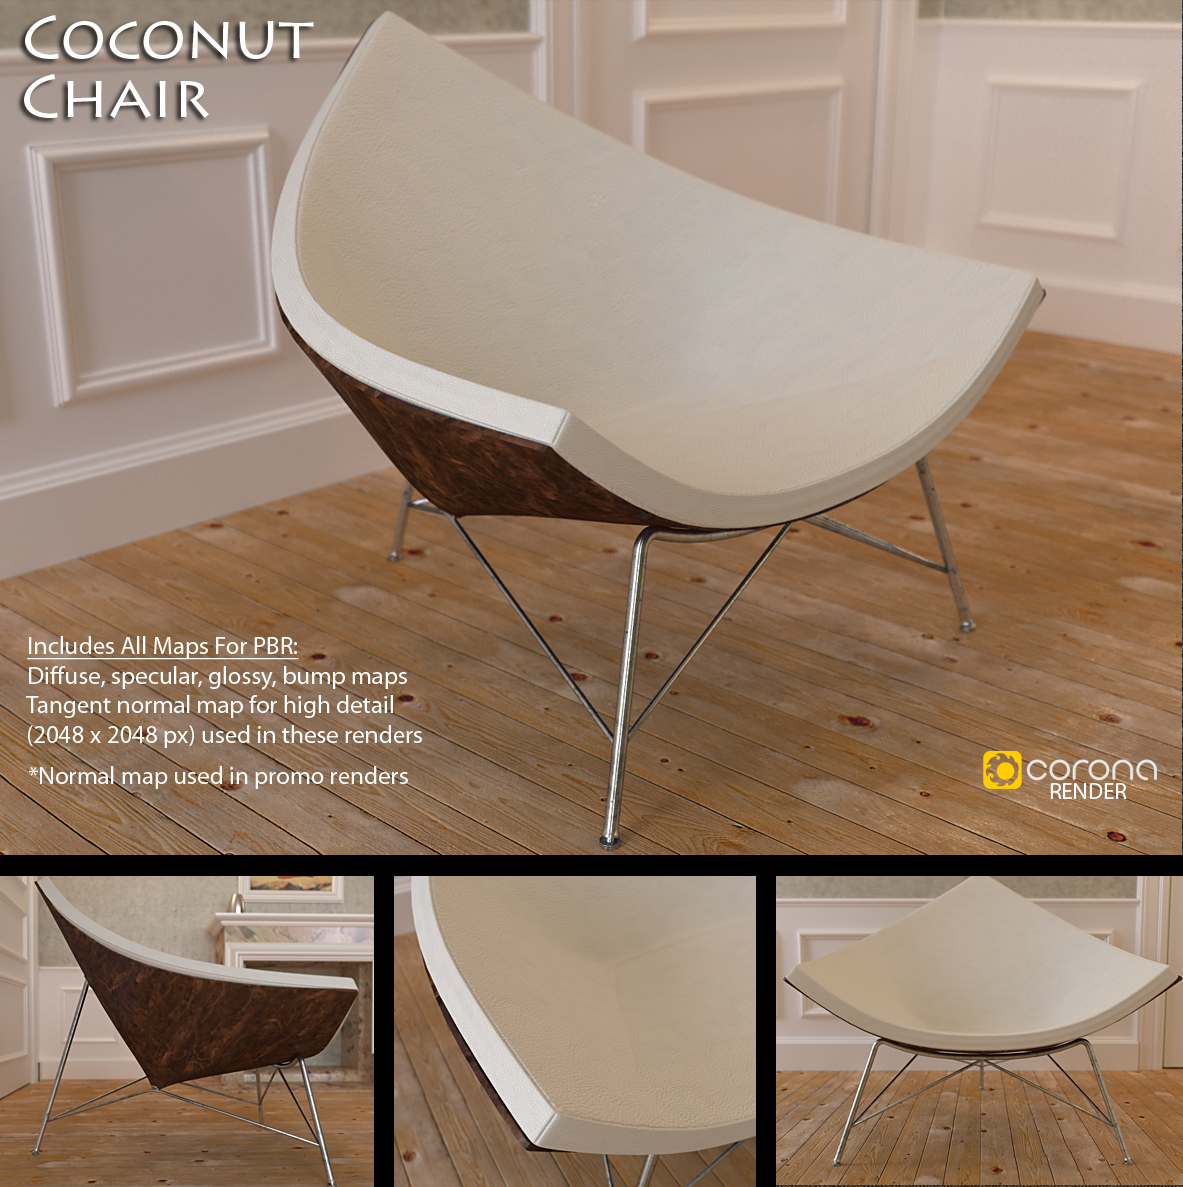 Free 3D Model: Coconut Chair by LuxXeon on DeviantArt